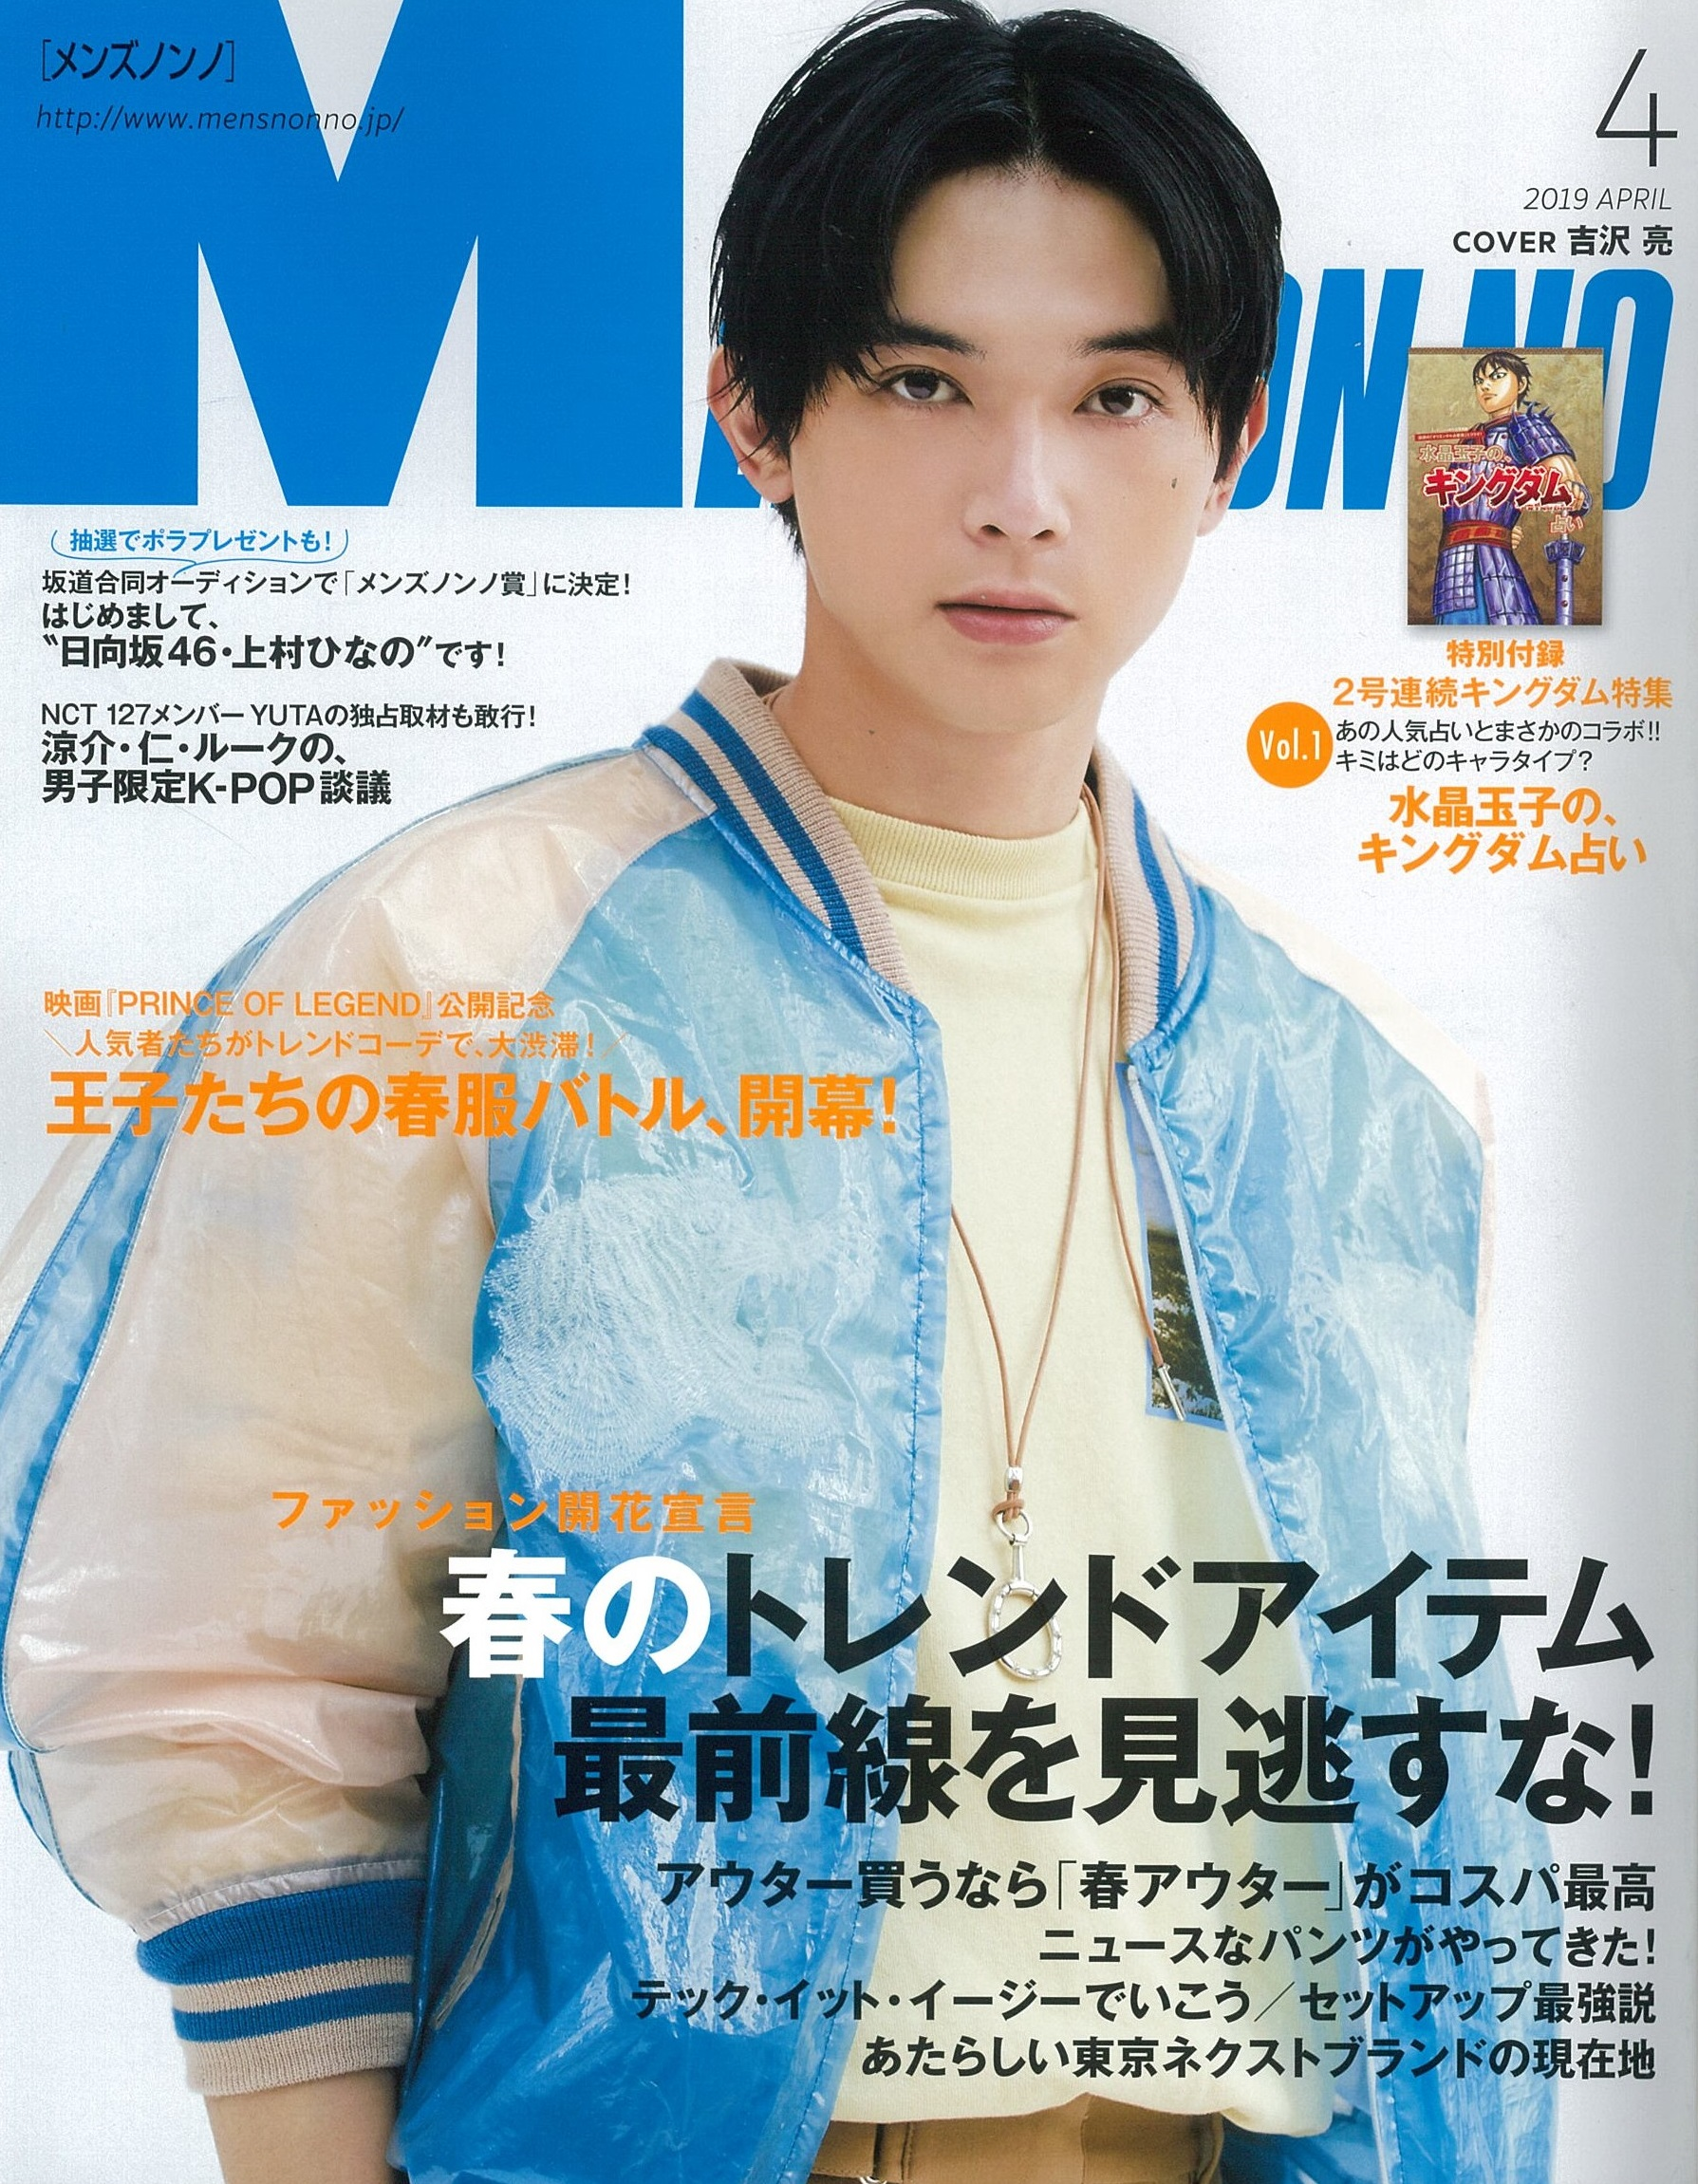 MEN'S NON-NO 4月号掲載